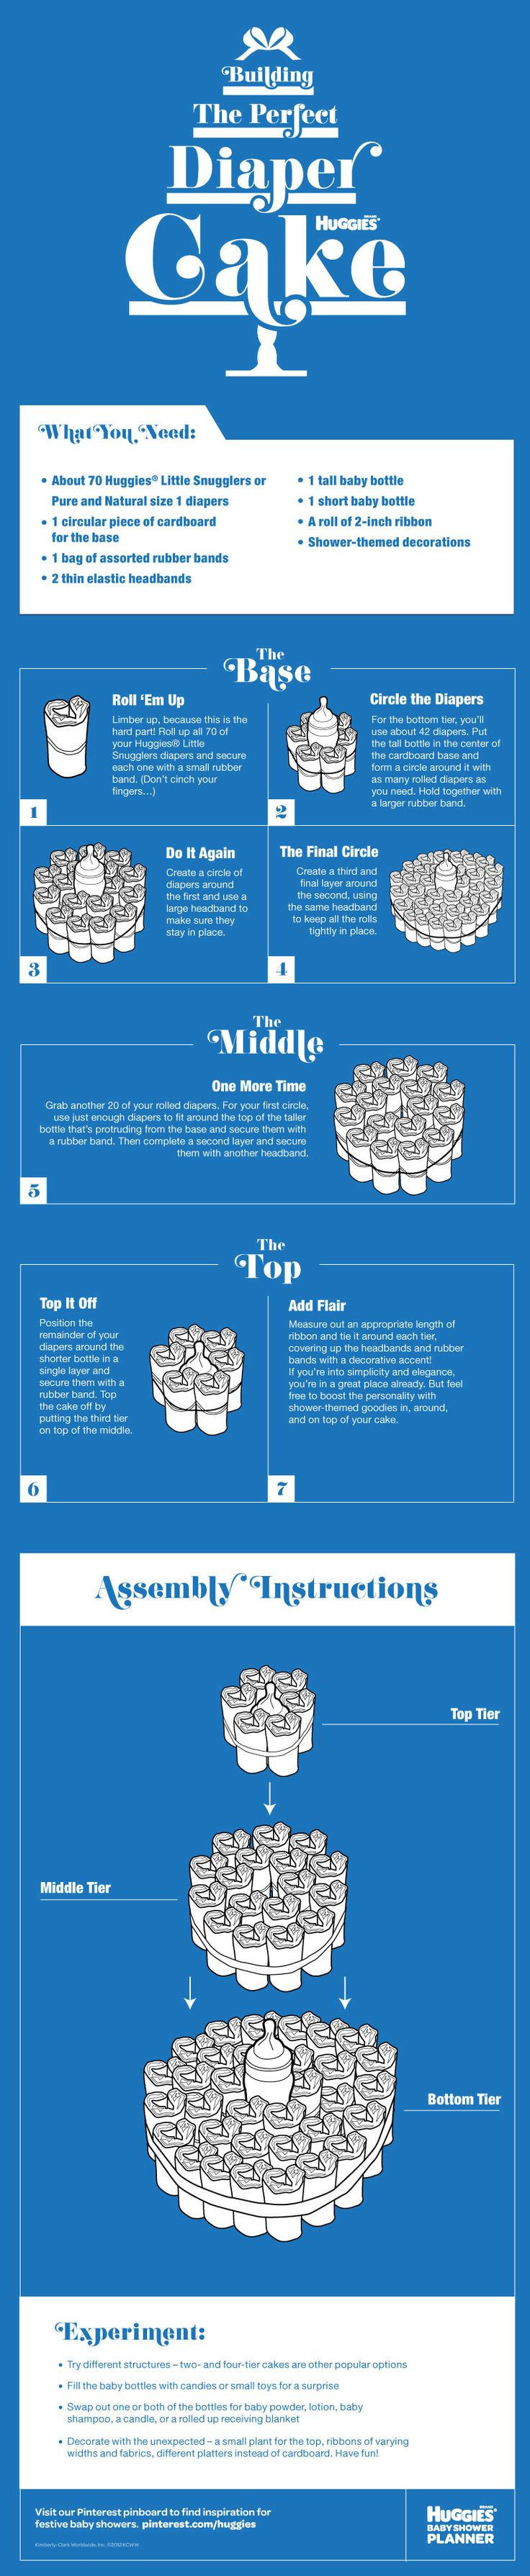 Ruby s rainbow room inspiration for kids bedroom decor at huggies - Building The Perfect Diaper Cake Infographic